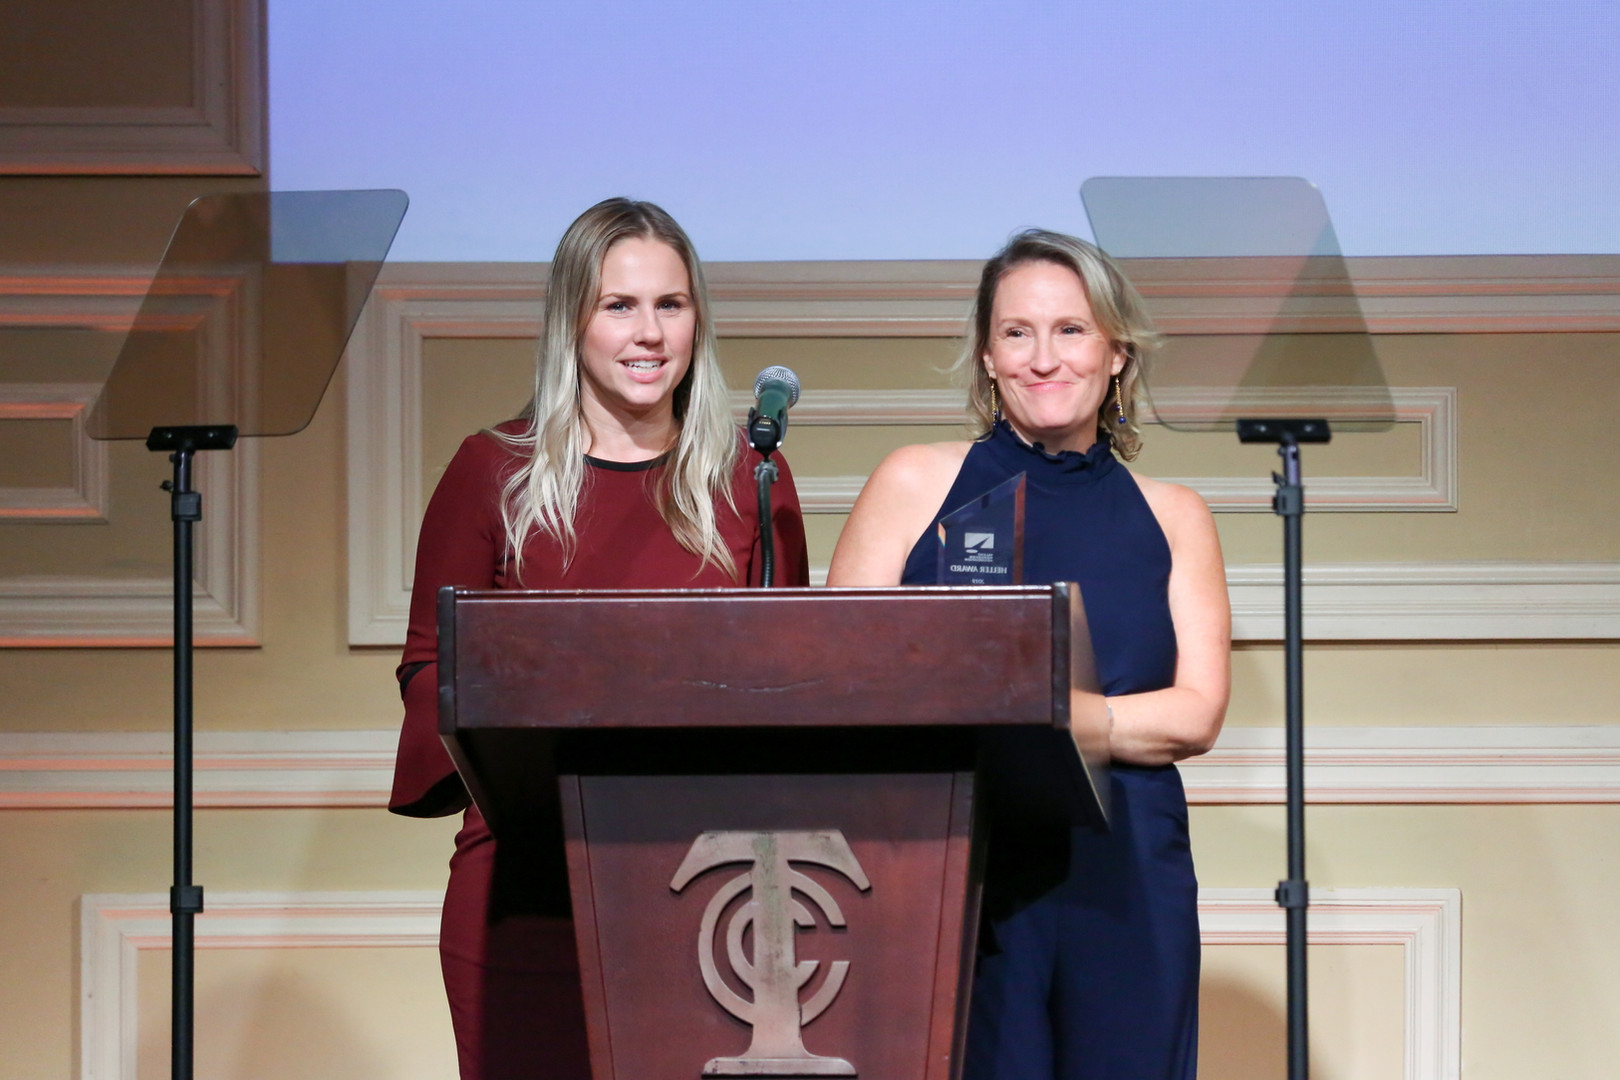 Krisha Bullock & Jamie Snow receiving the 2019 Heller Award for Youth Television Casting Director of the Year